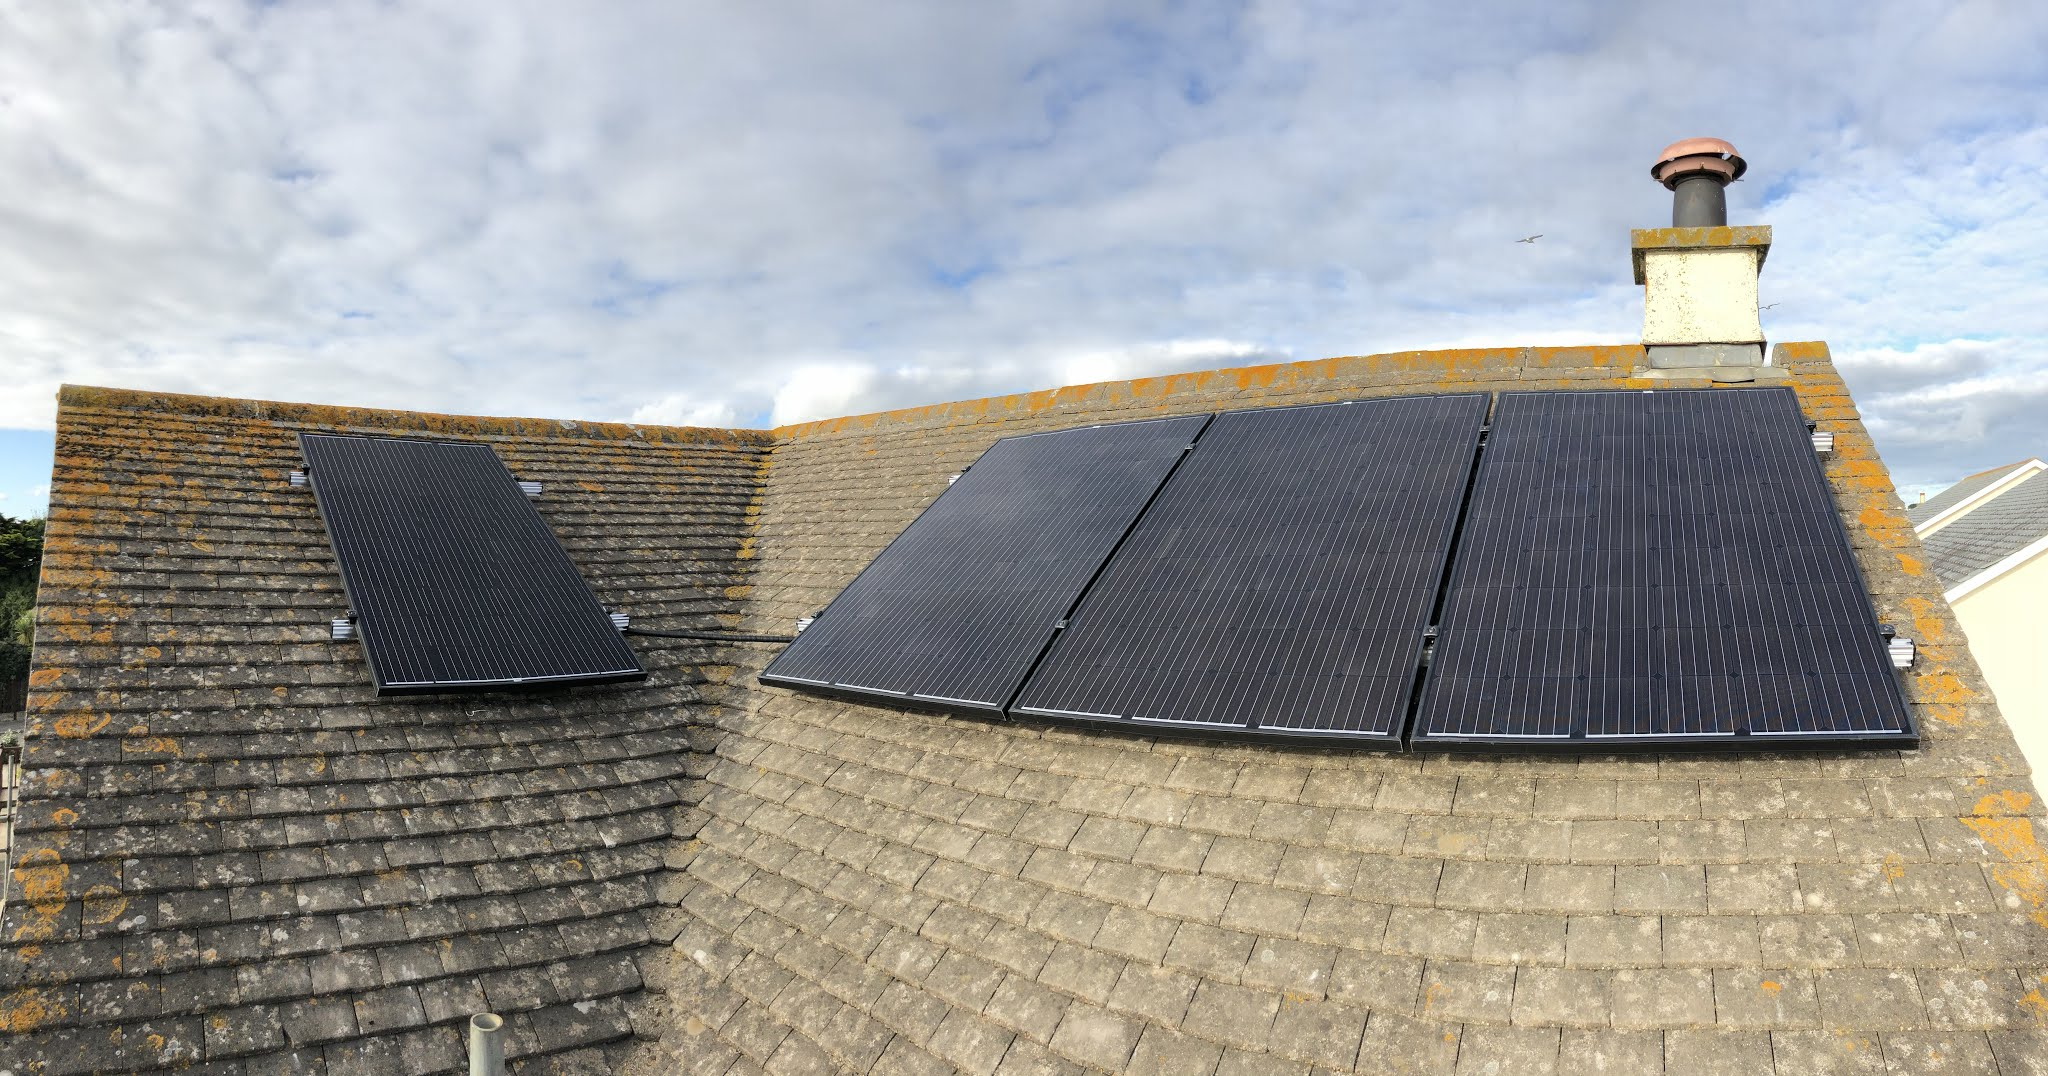 A smart solar PV installation in Mullion on a concrete tile roof,